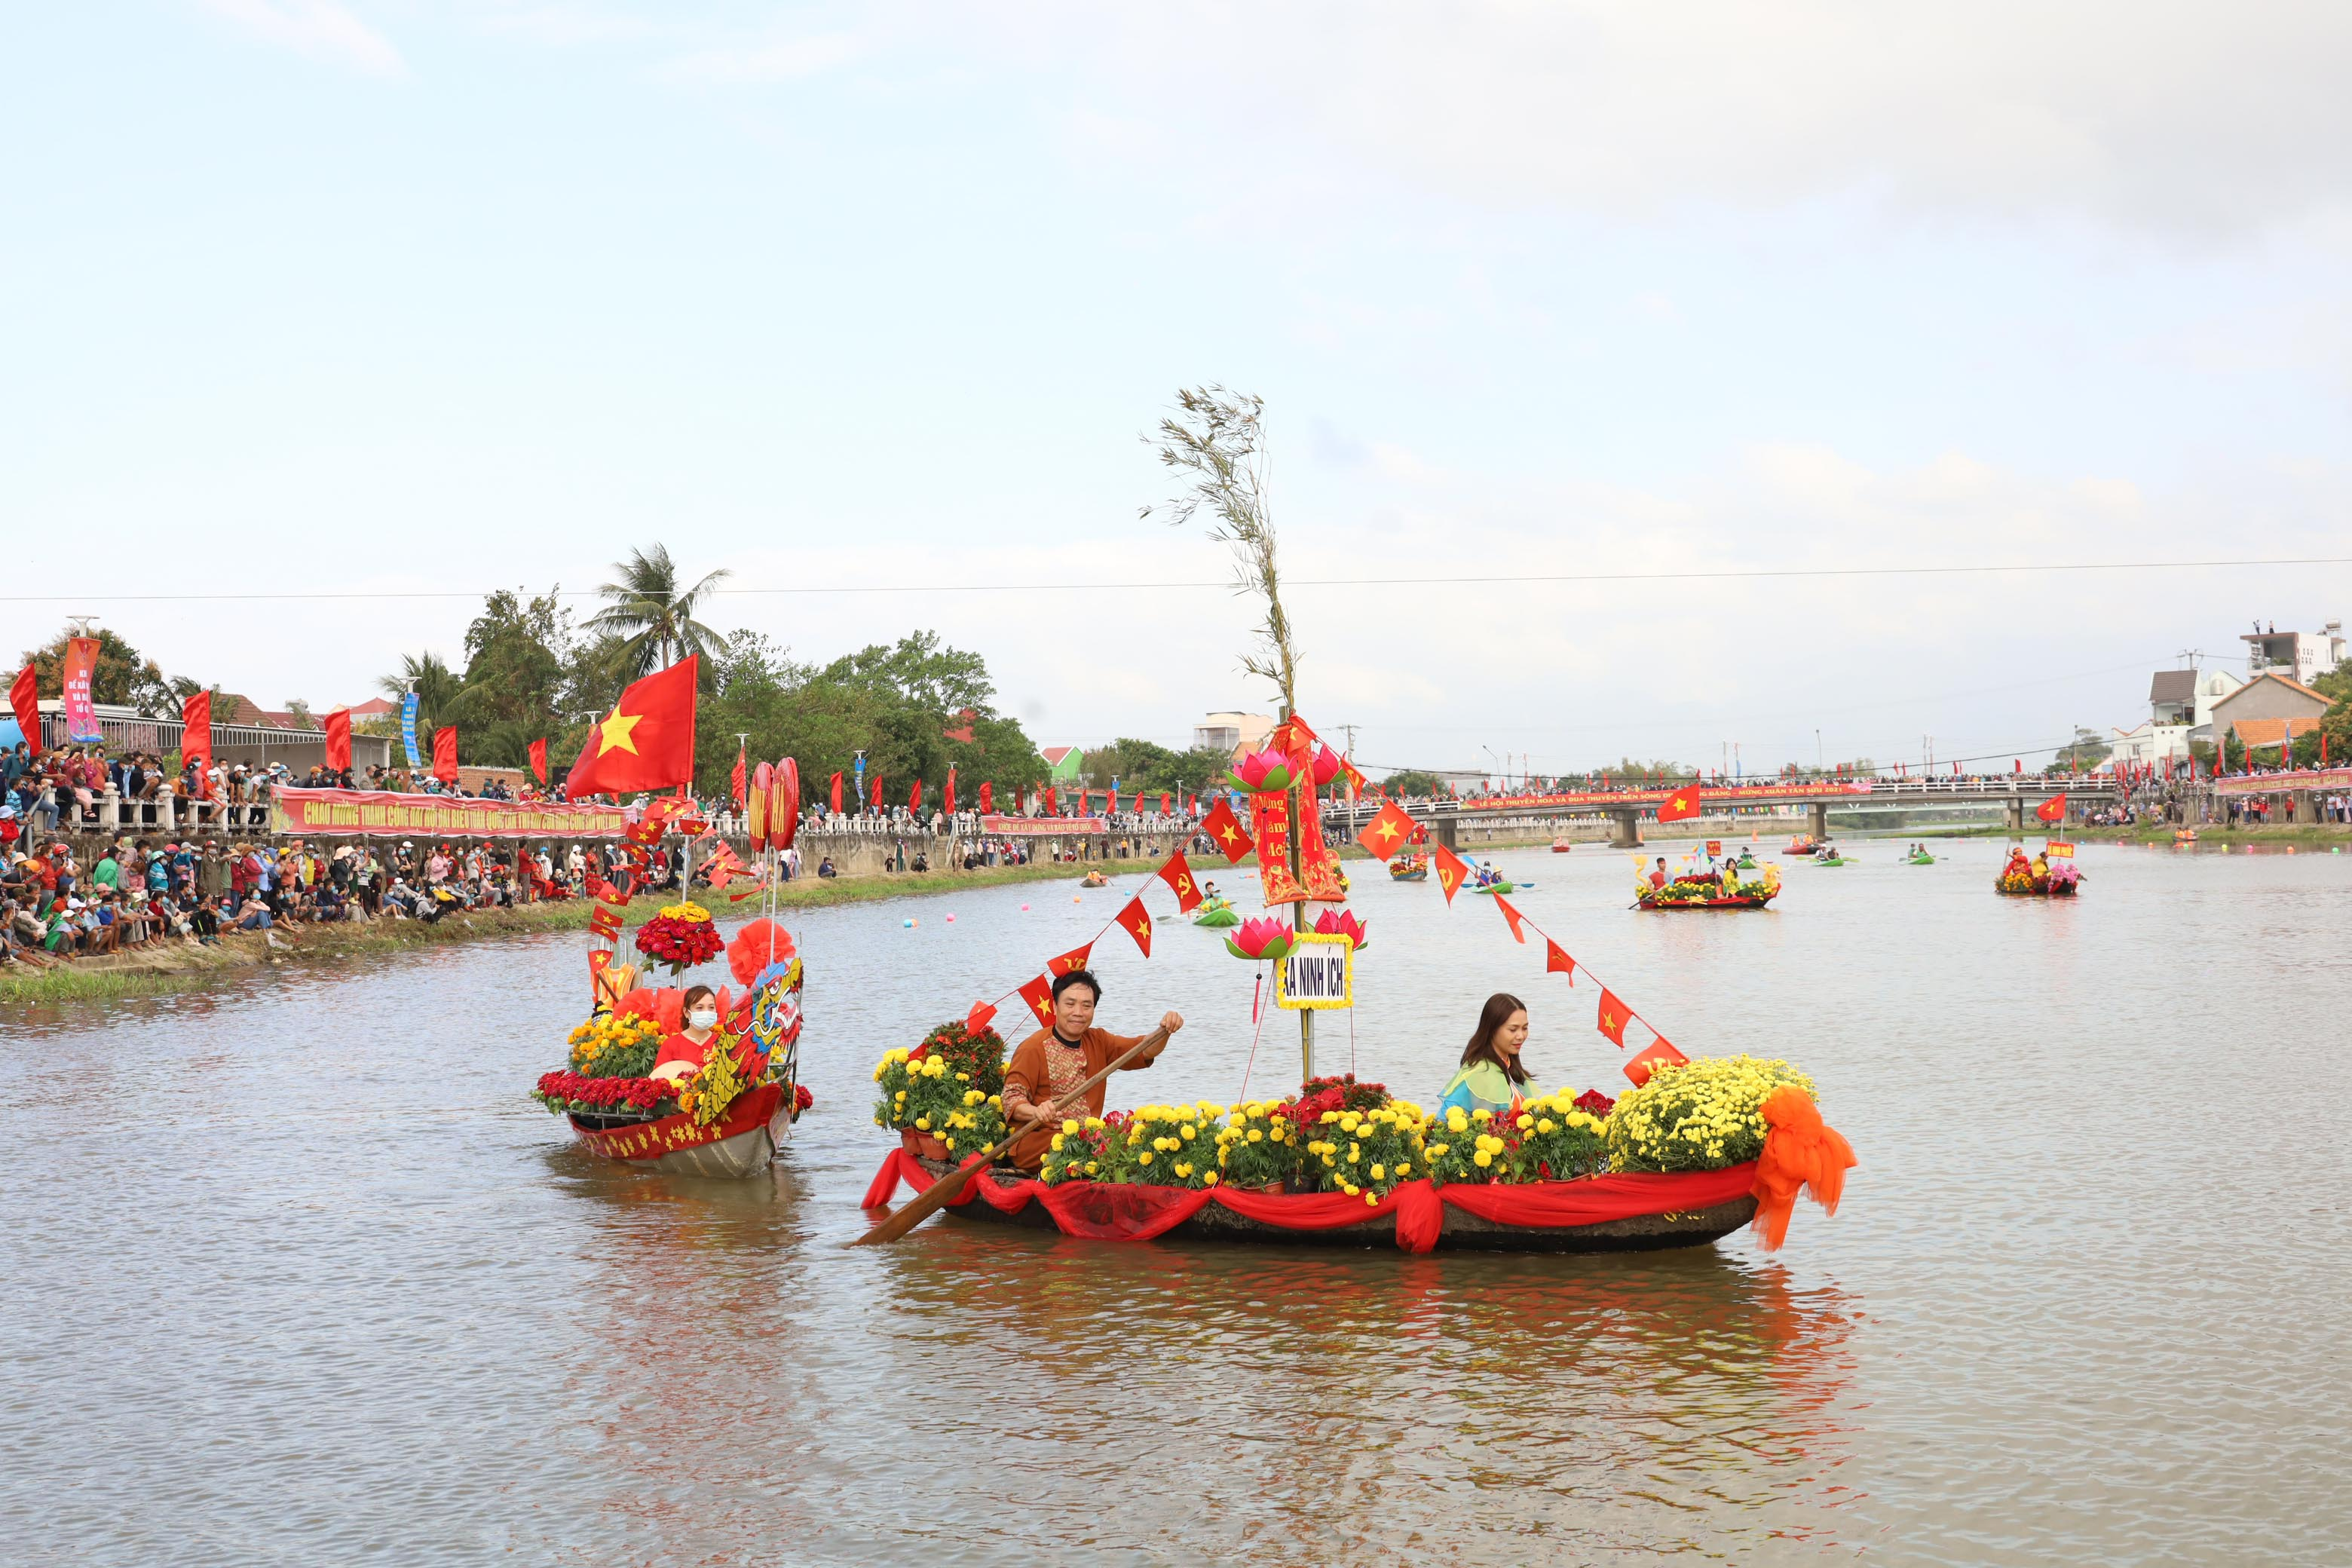 Flower boats marching on Dinh River